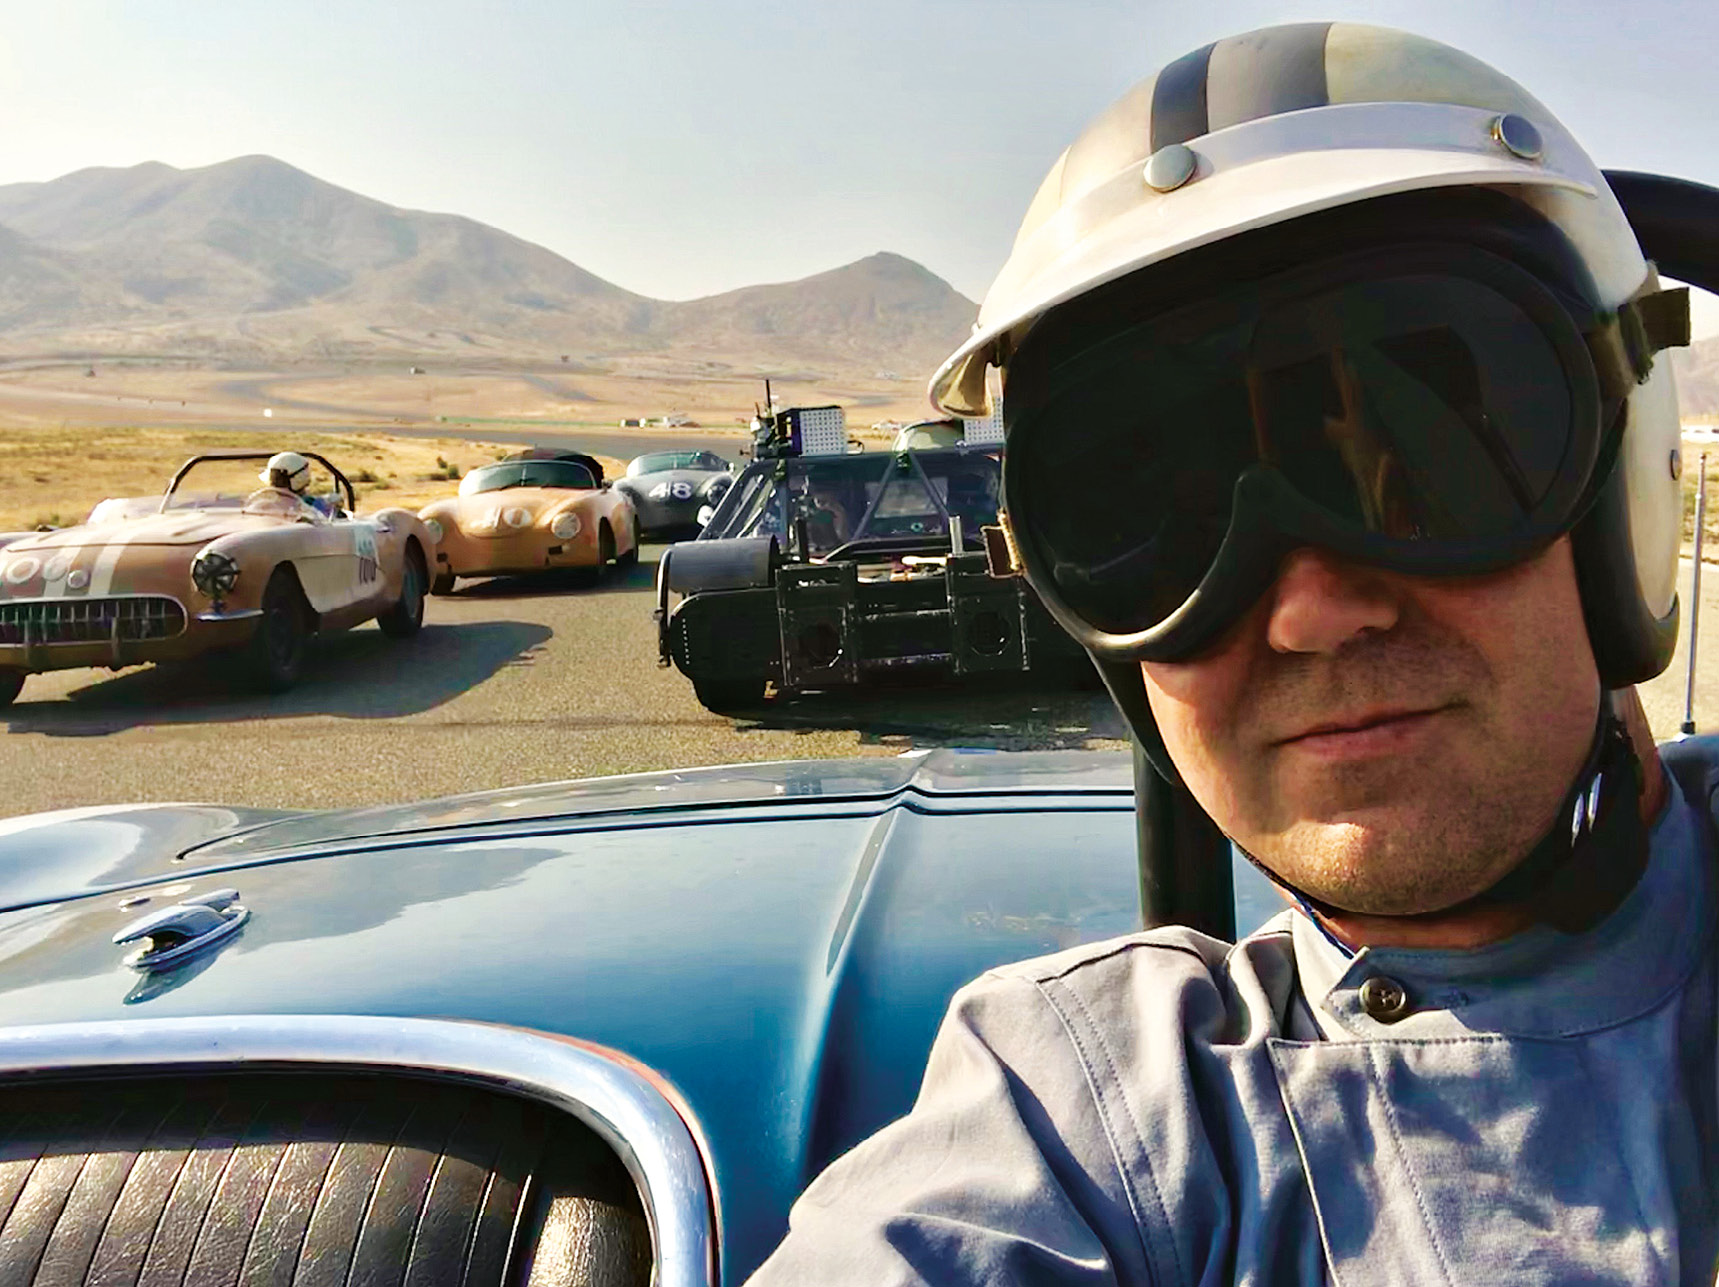 Hill on board a Corvette ready to recreate a race at Willow Springs Raceway, with filming vehicle behind.